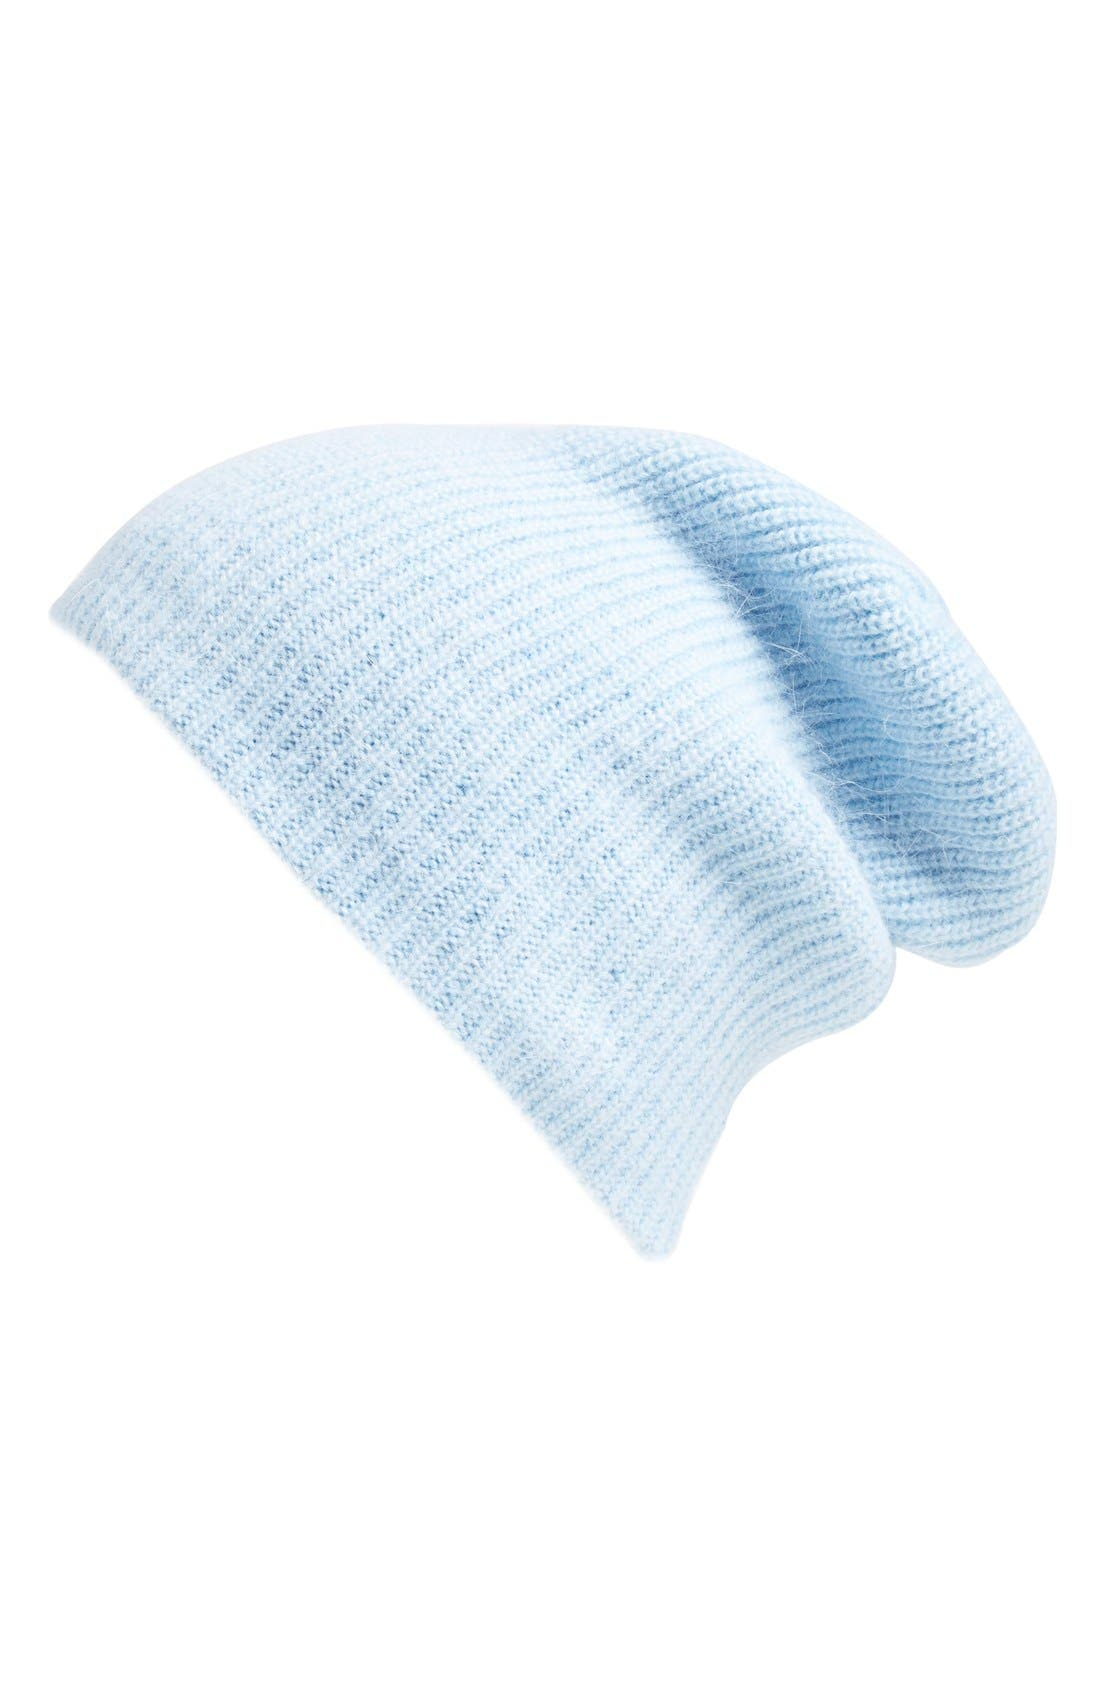 Alternate Image 1 Selected - Free People Knit Beanie